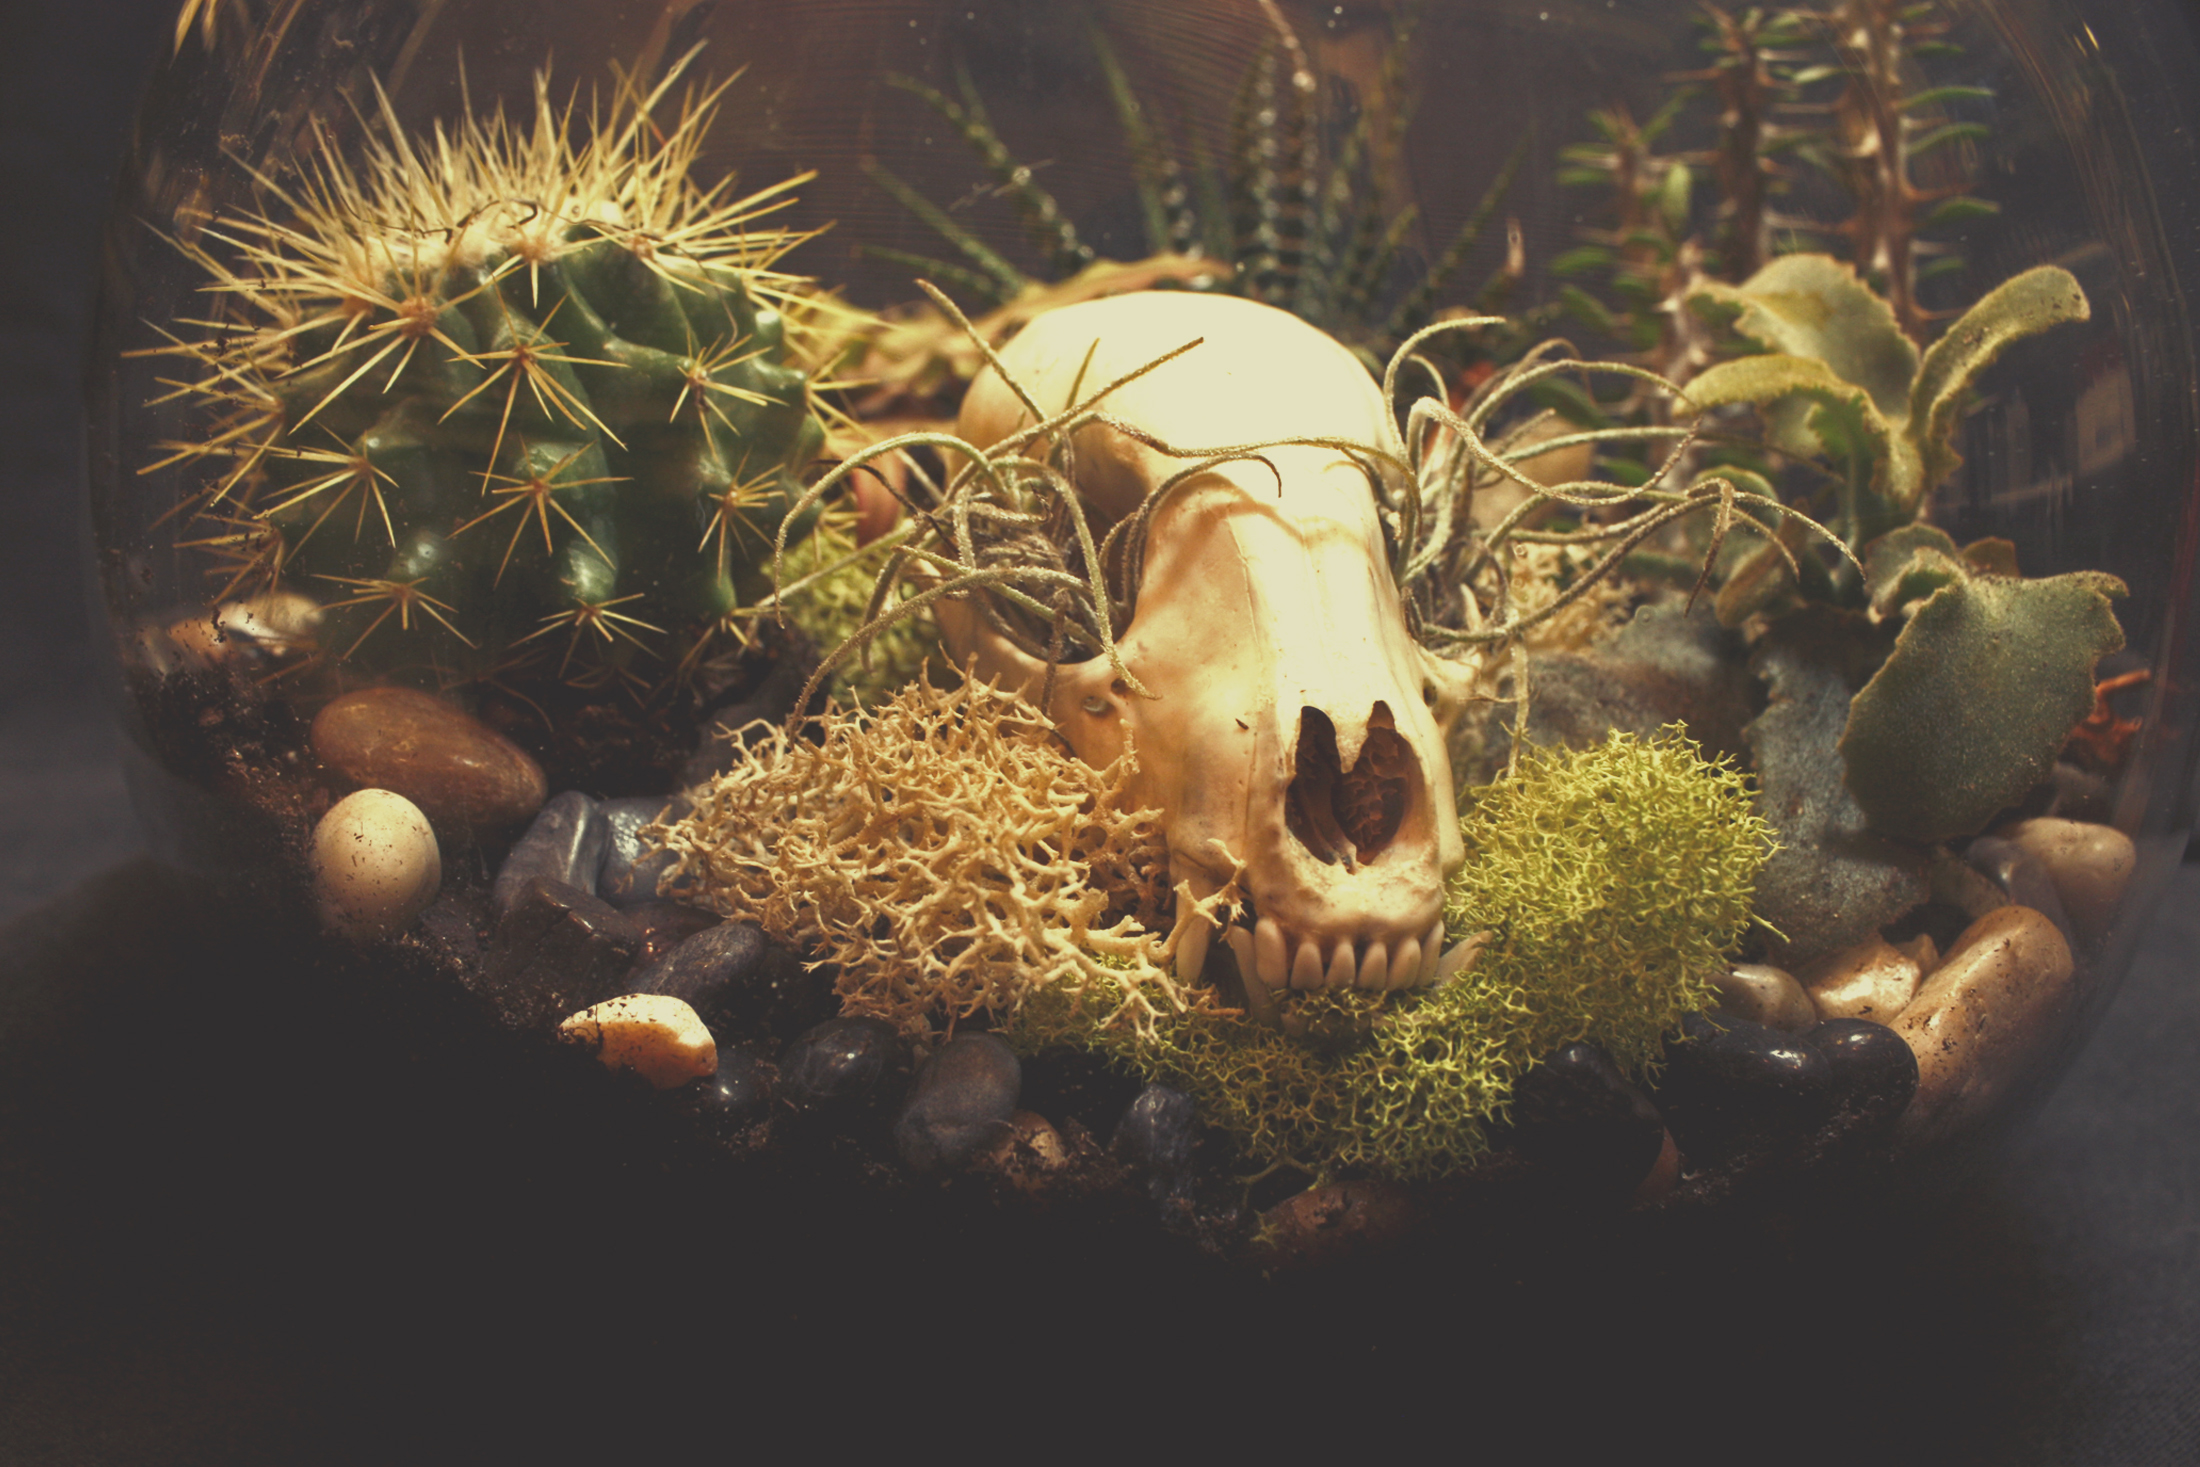 Custom Raccoon Skull Succulent Terrarium with Quartz Crystal, created for Nick Wagner, a great guy and an amazing tattoo artist at Black Hive Tattoo .